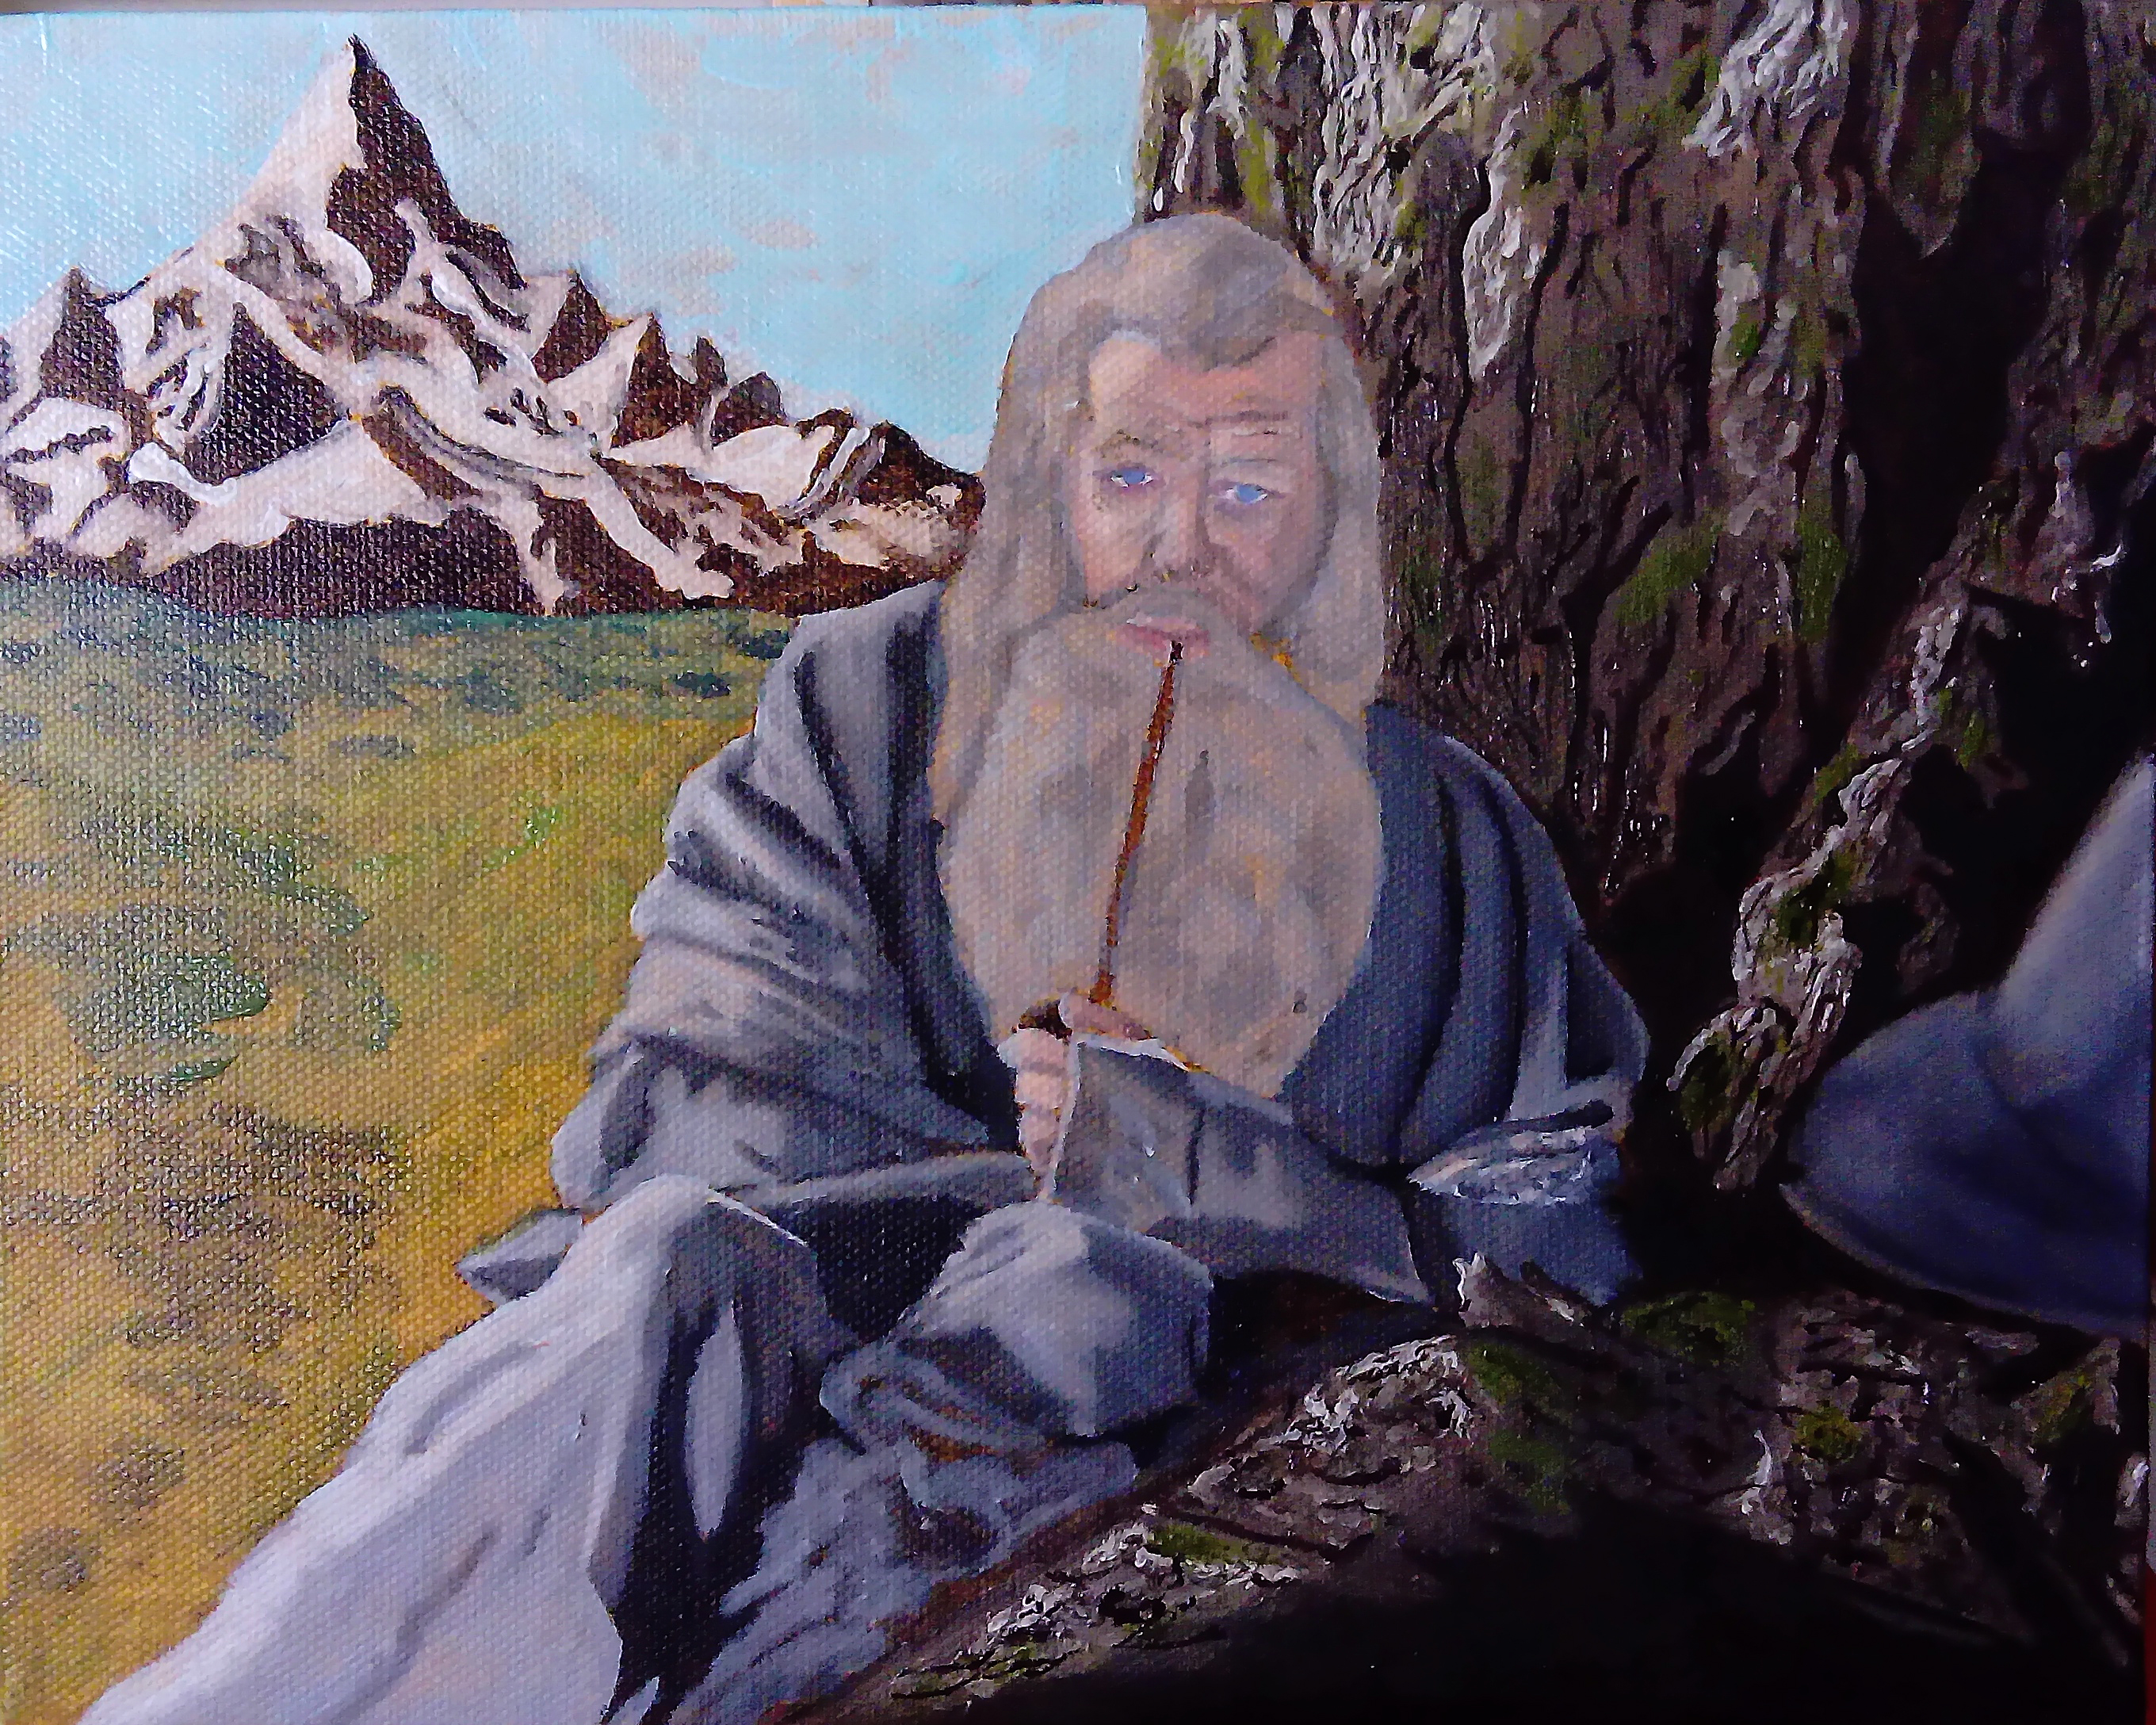 Gandalf the grey pilgrim wizard lotr lord of th rings art illustration oil painting concept art tolkien story